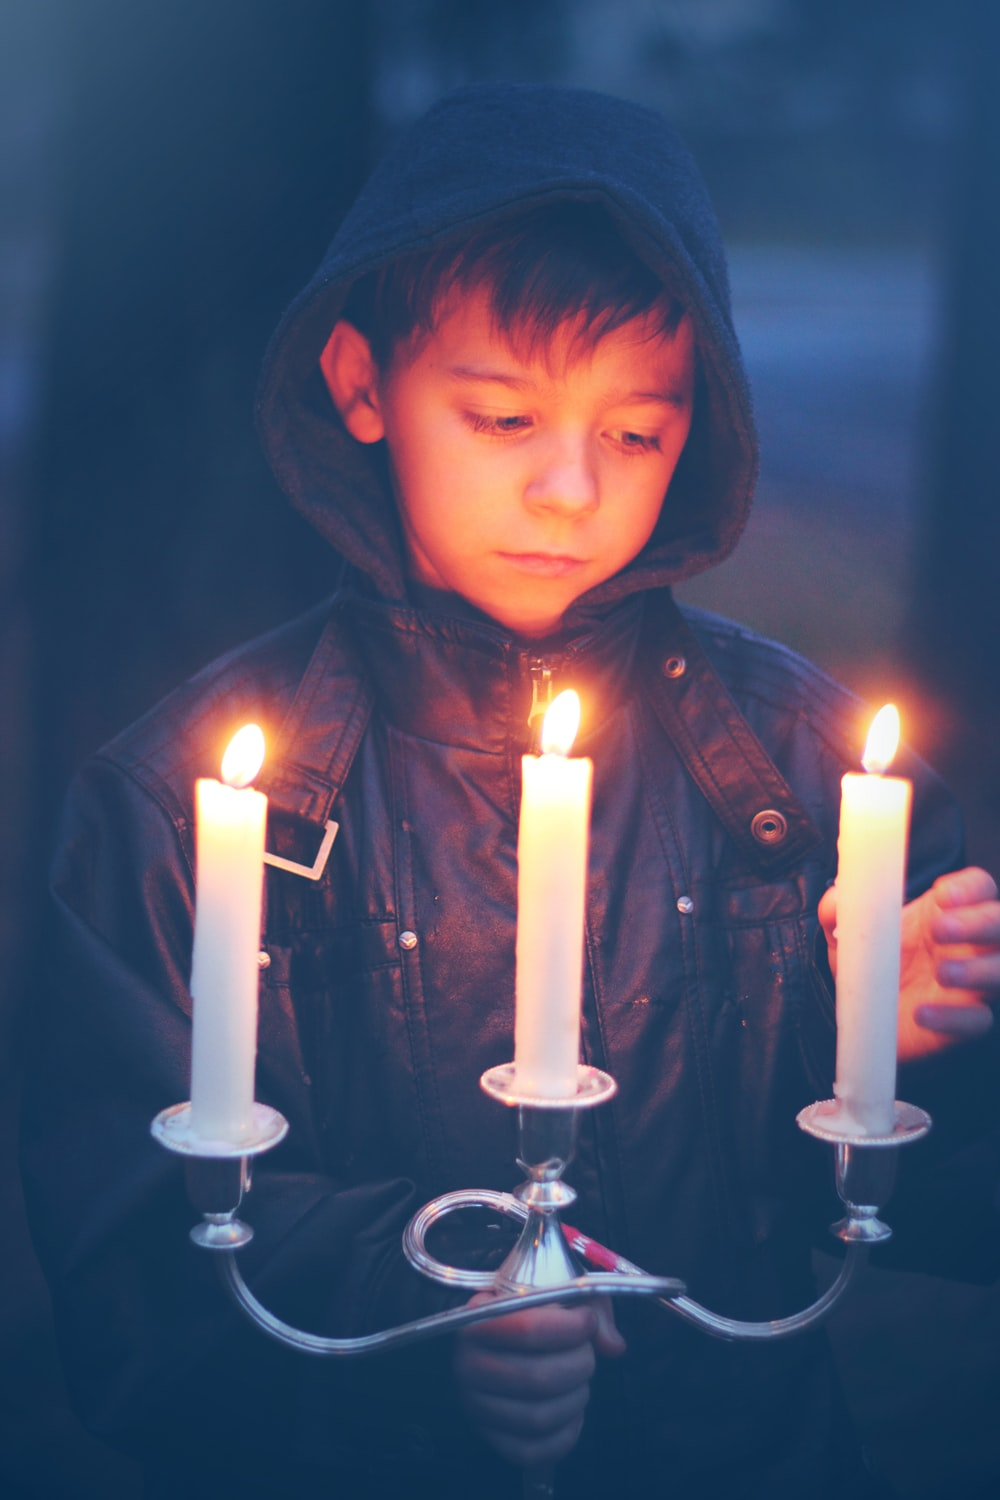 boy in gray hoodie holding lighted candles